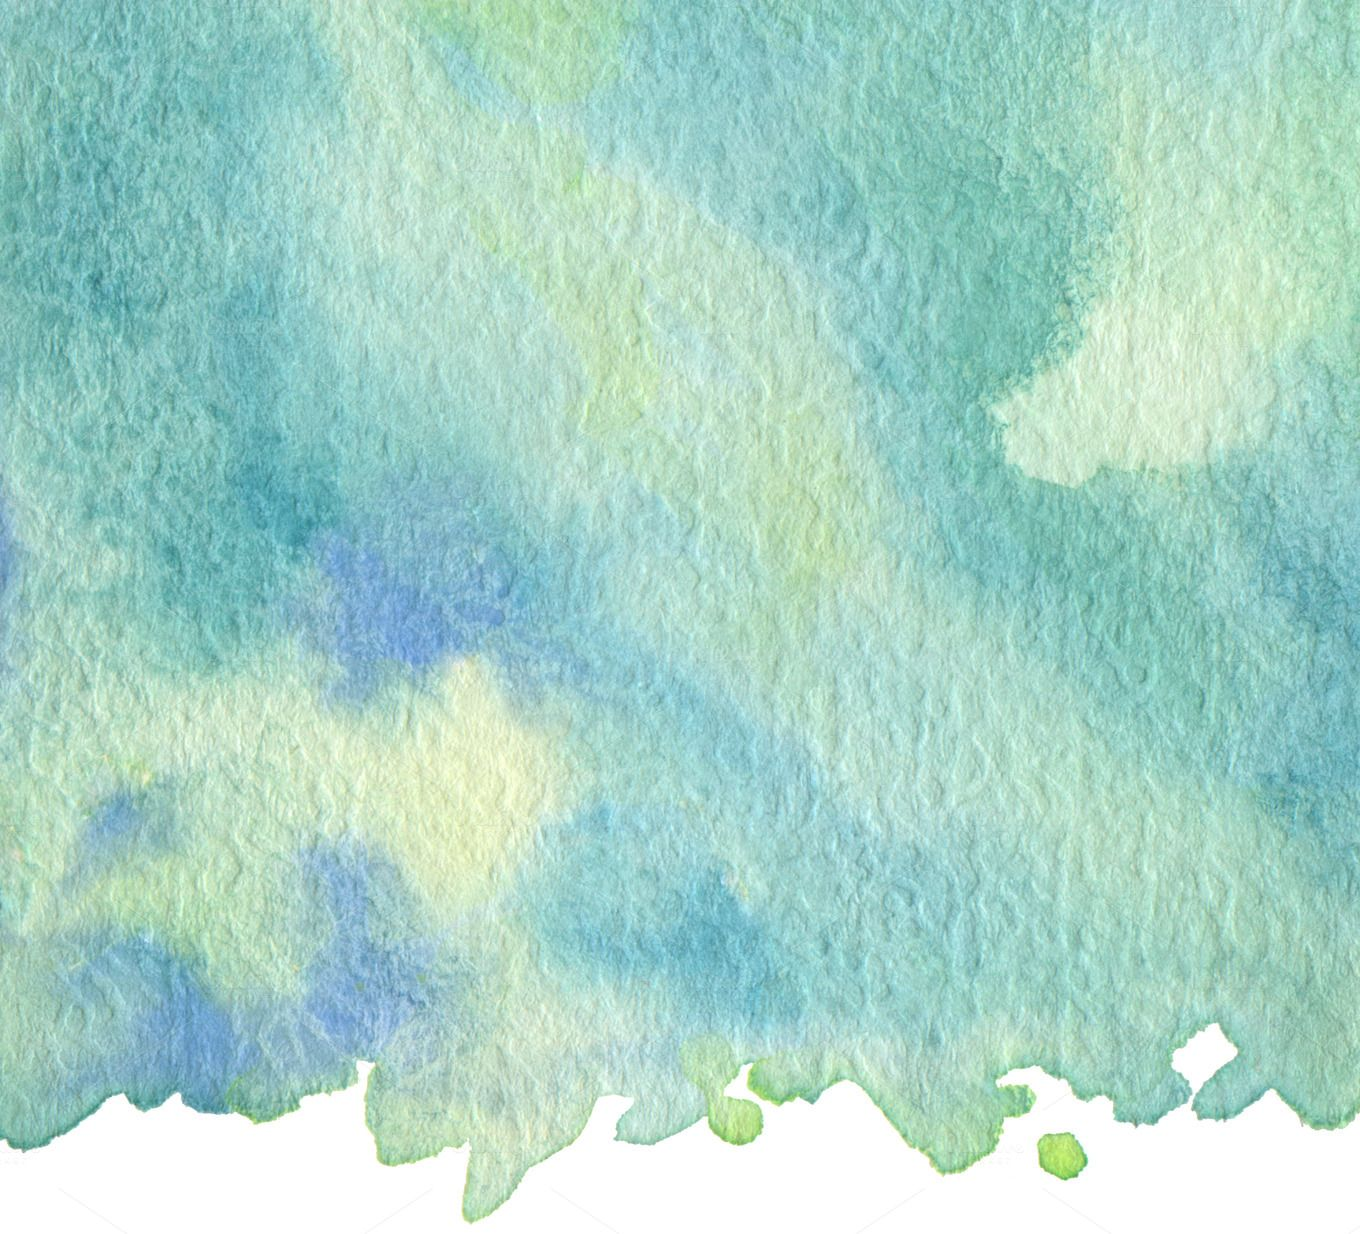 Watercolor Brush Strokes Painting Brush Strokes Painting